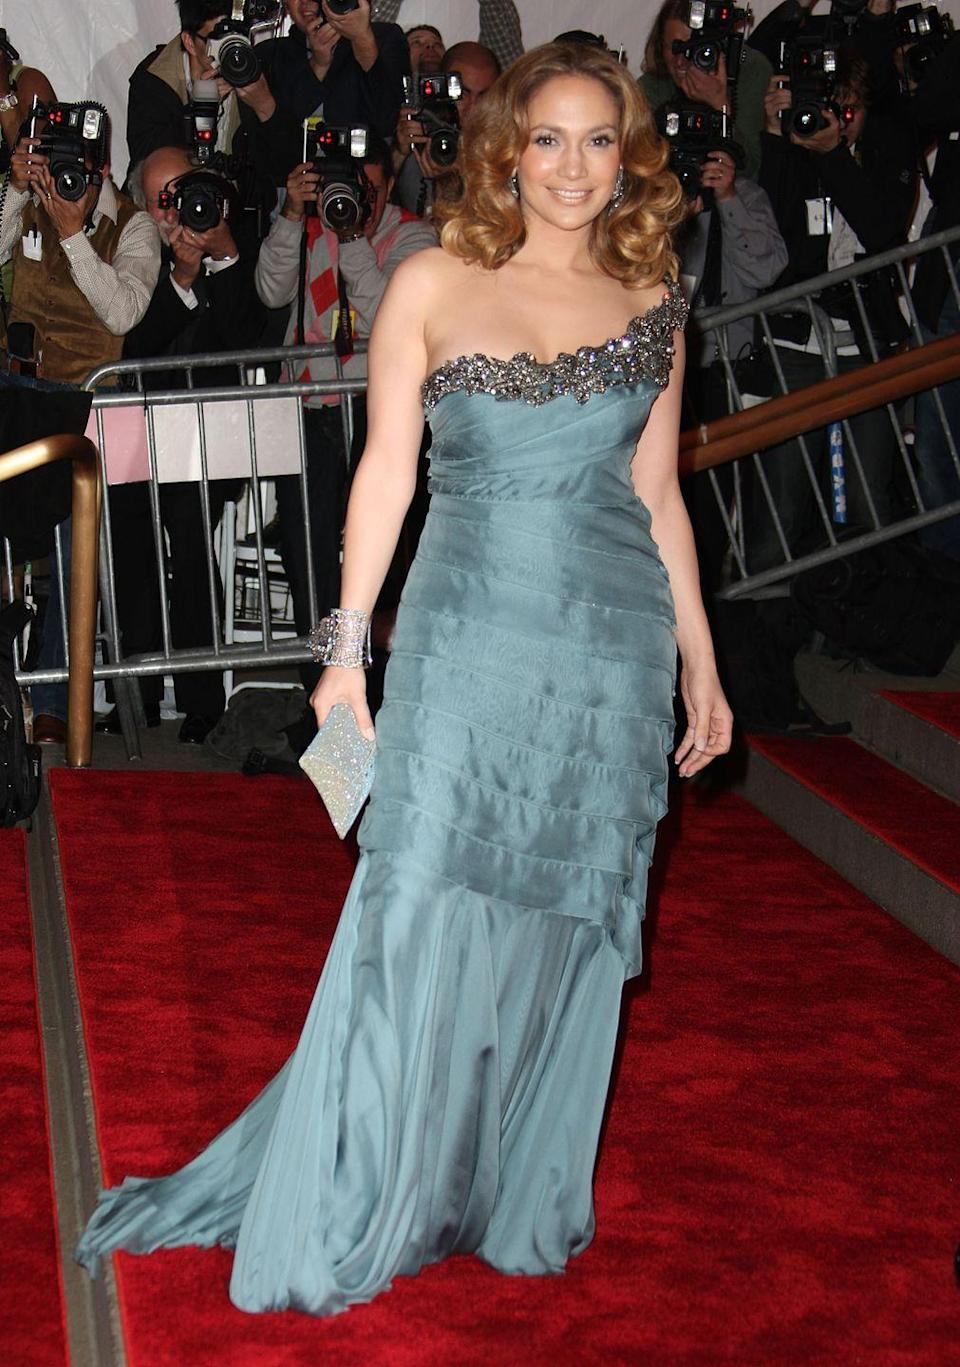 <p><strong>When: </strong>May 2008</p><p><strong>Where: </strong>The Met Gala</p><p><strong>Wearing: </strong>Alberta Ferretti</p>